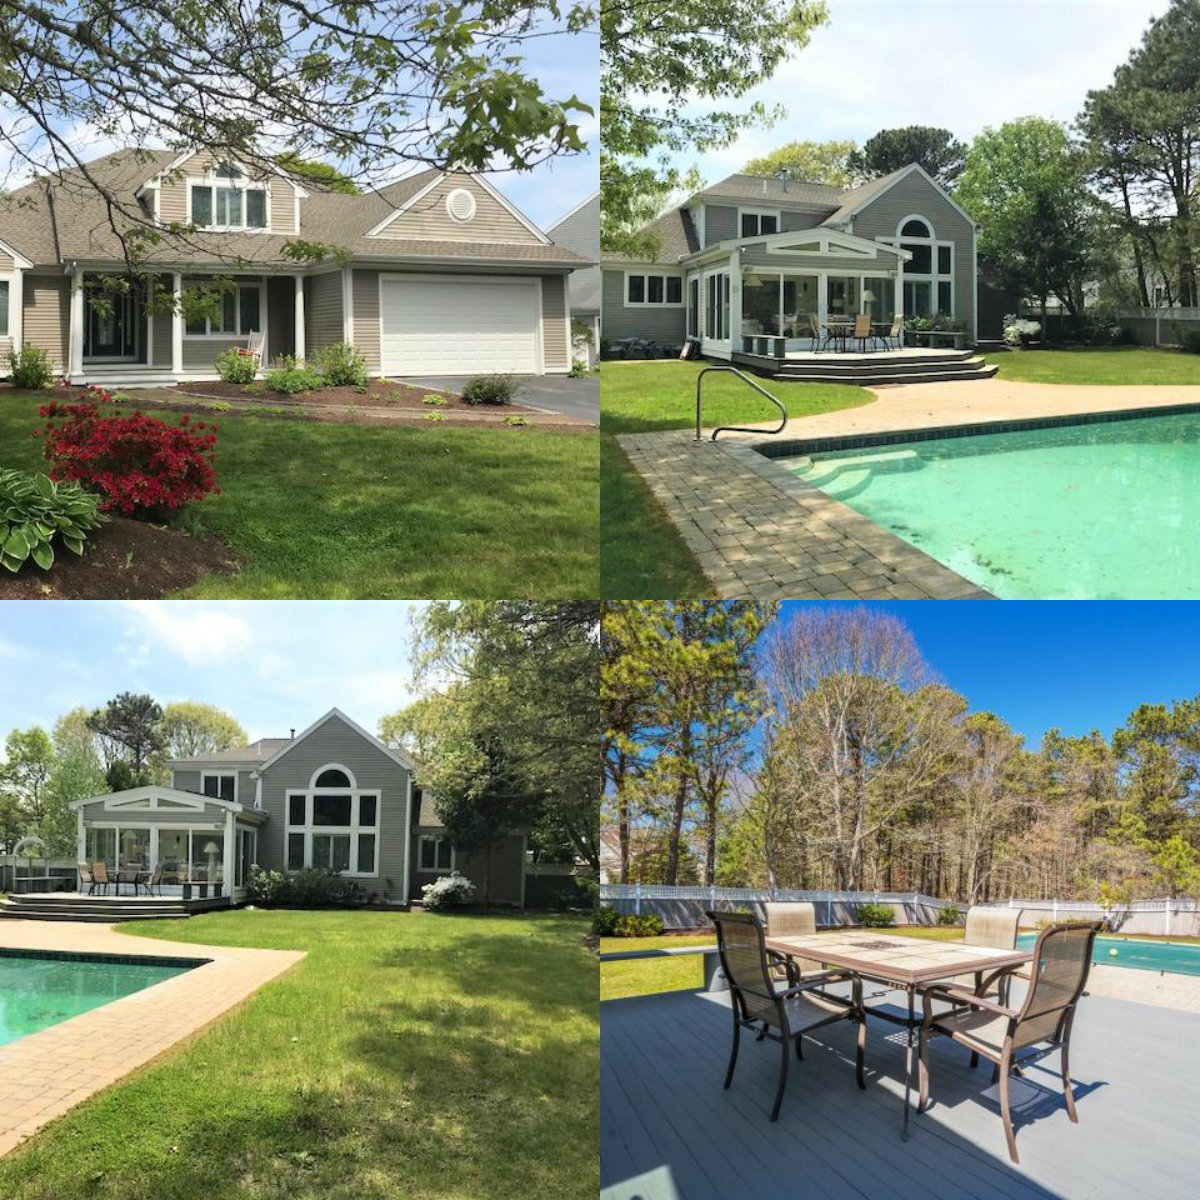 Images of pool at 72 Bayshore Drive in South Mashpee Cape Cod MA